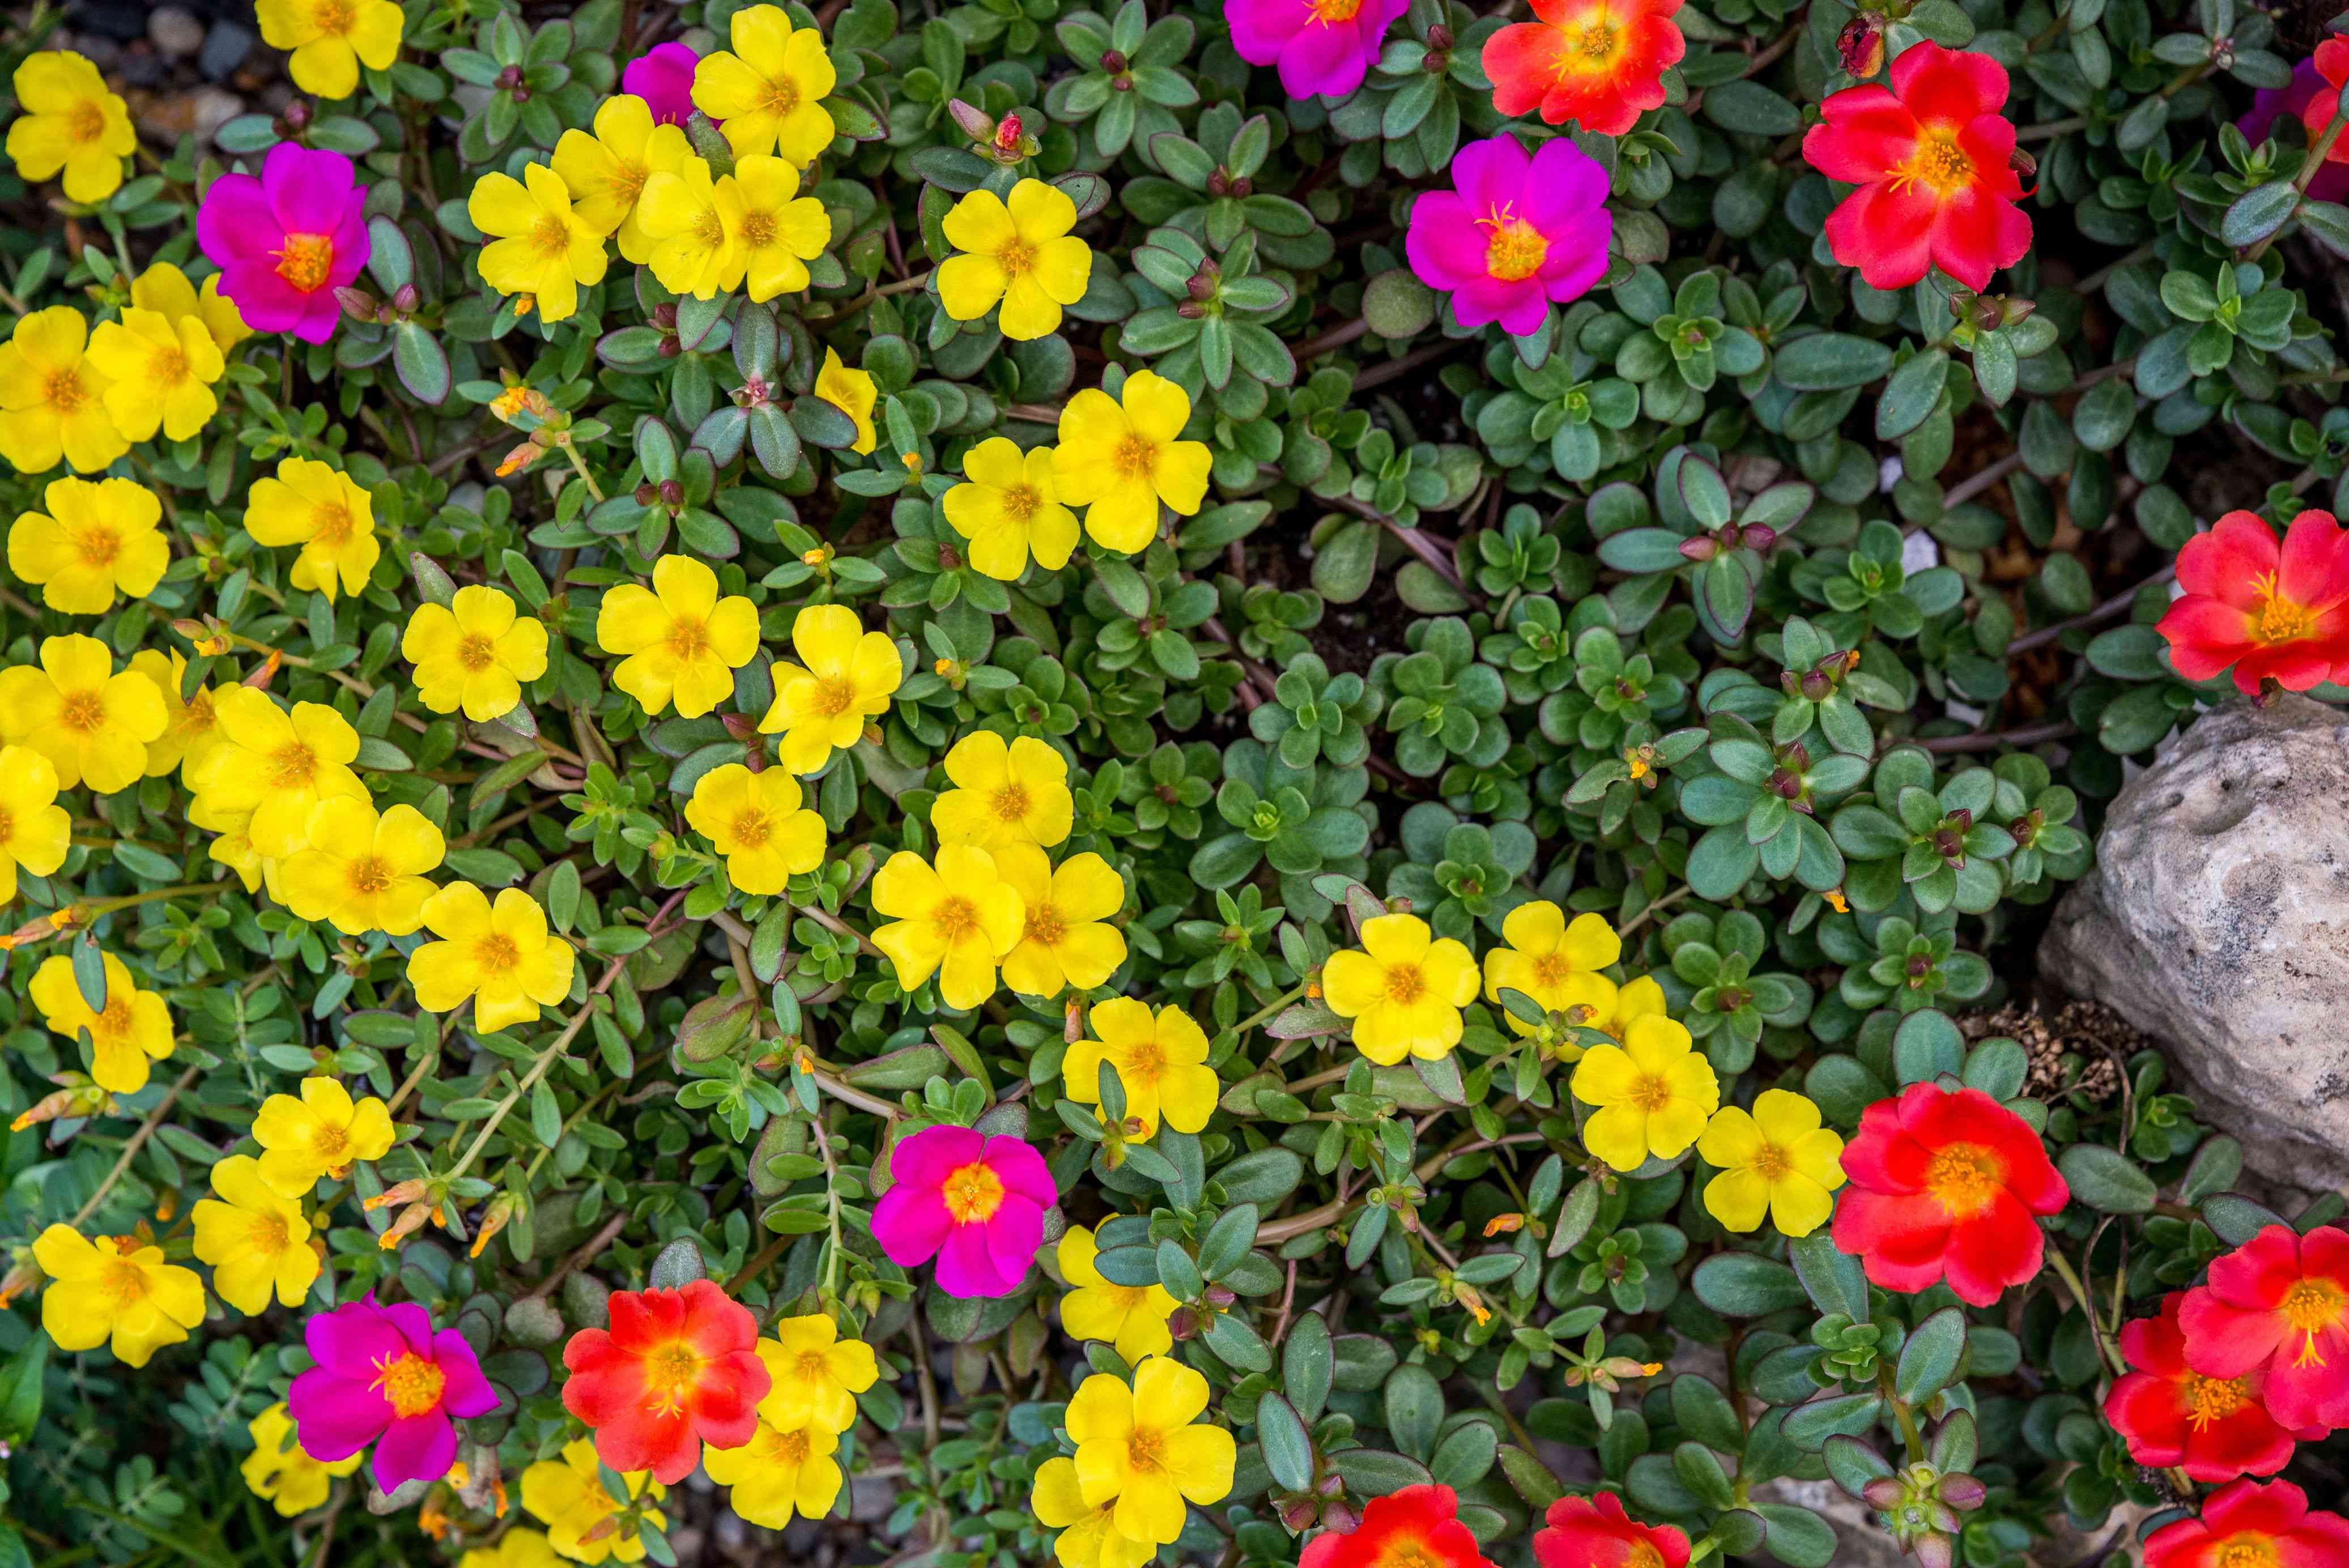 Moss rose flowers with yellow, pink and red colored petals in garden